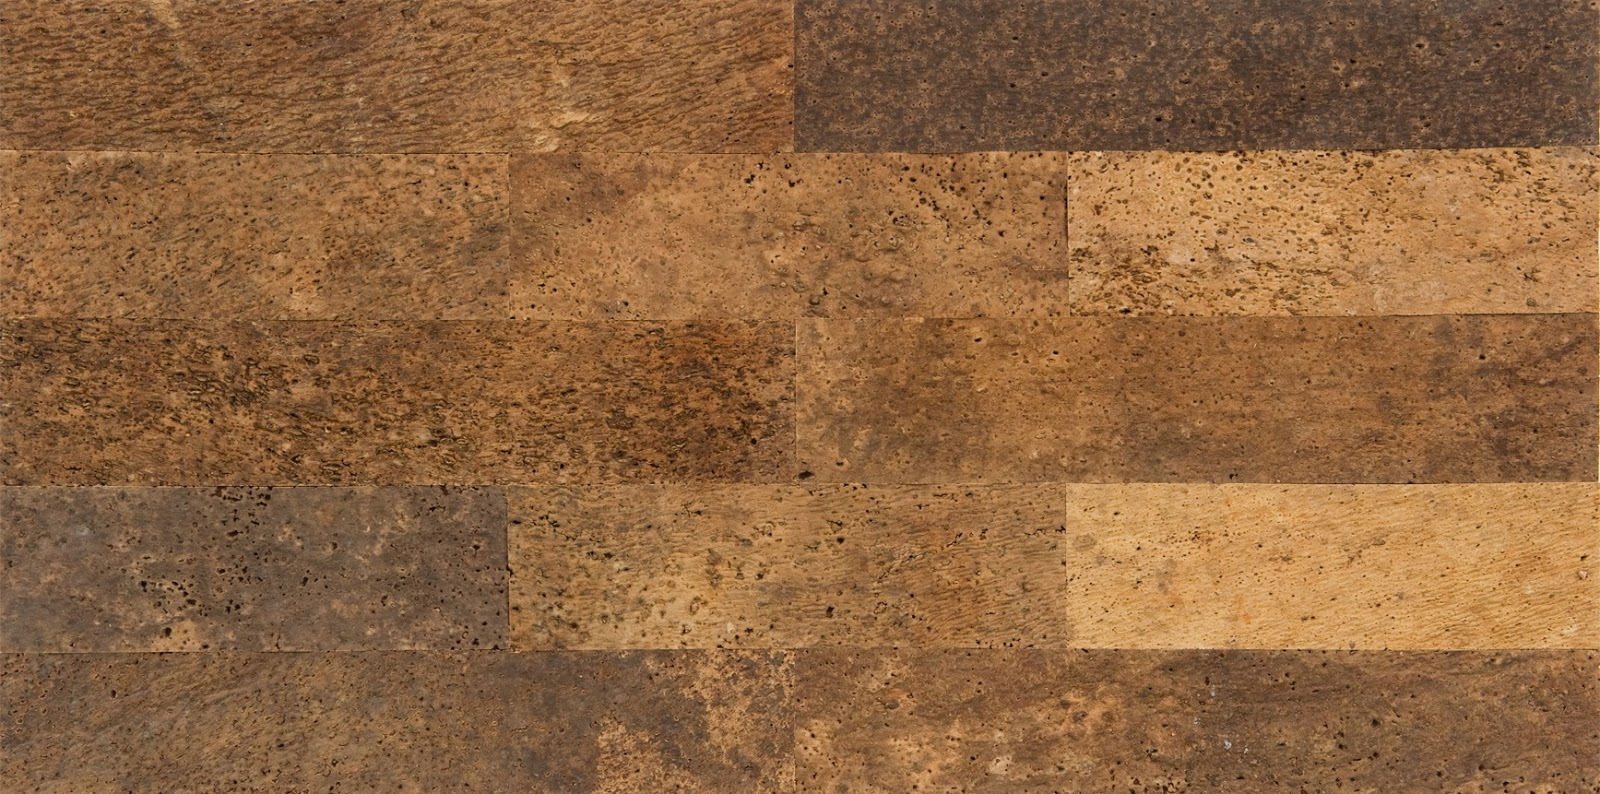 jelinek cork wall tiles california